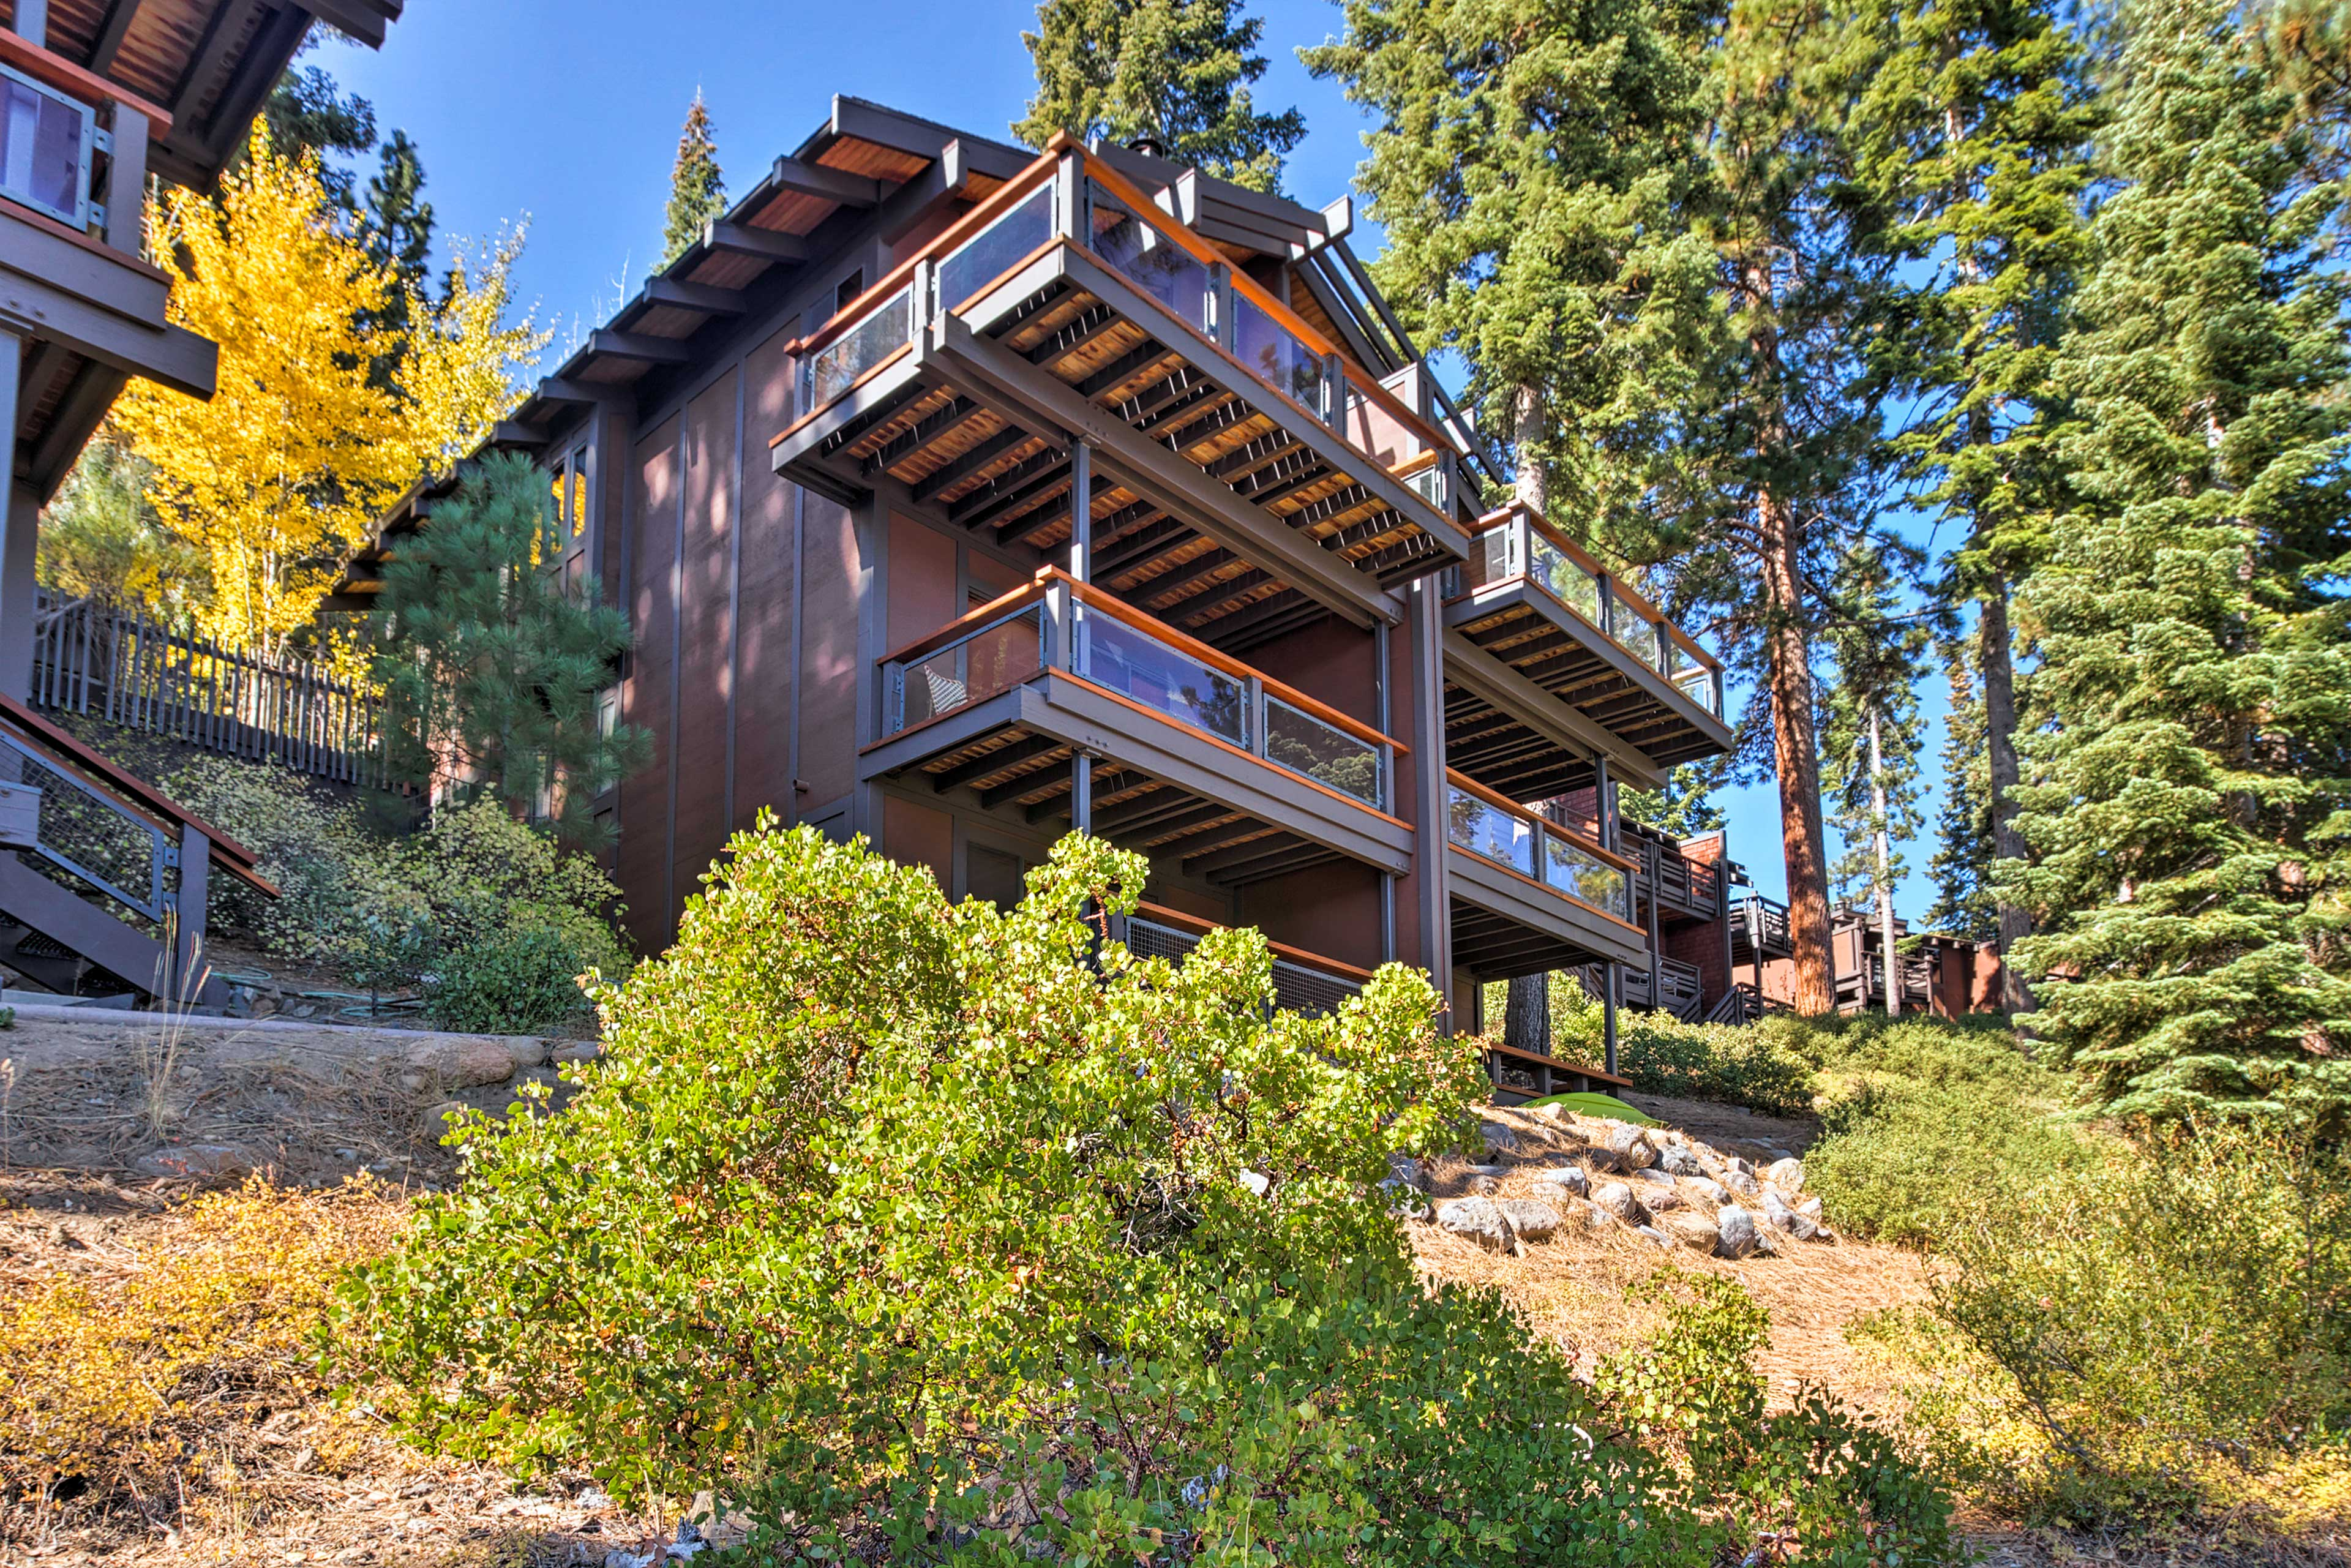 Tahoe City is just an 8-minute drive away.